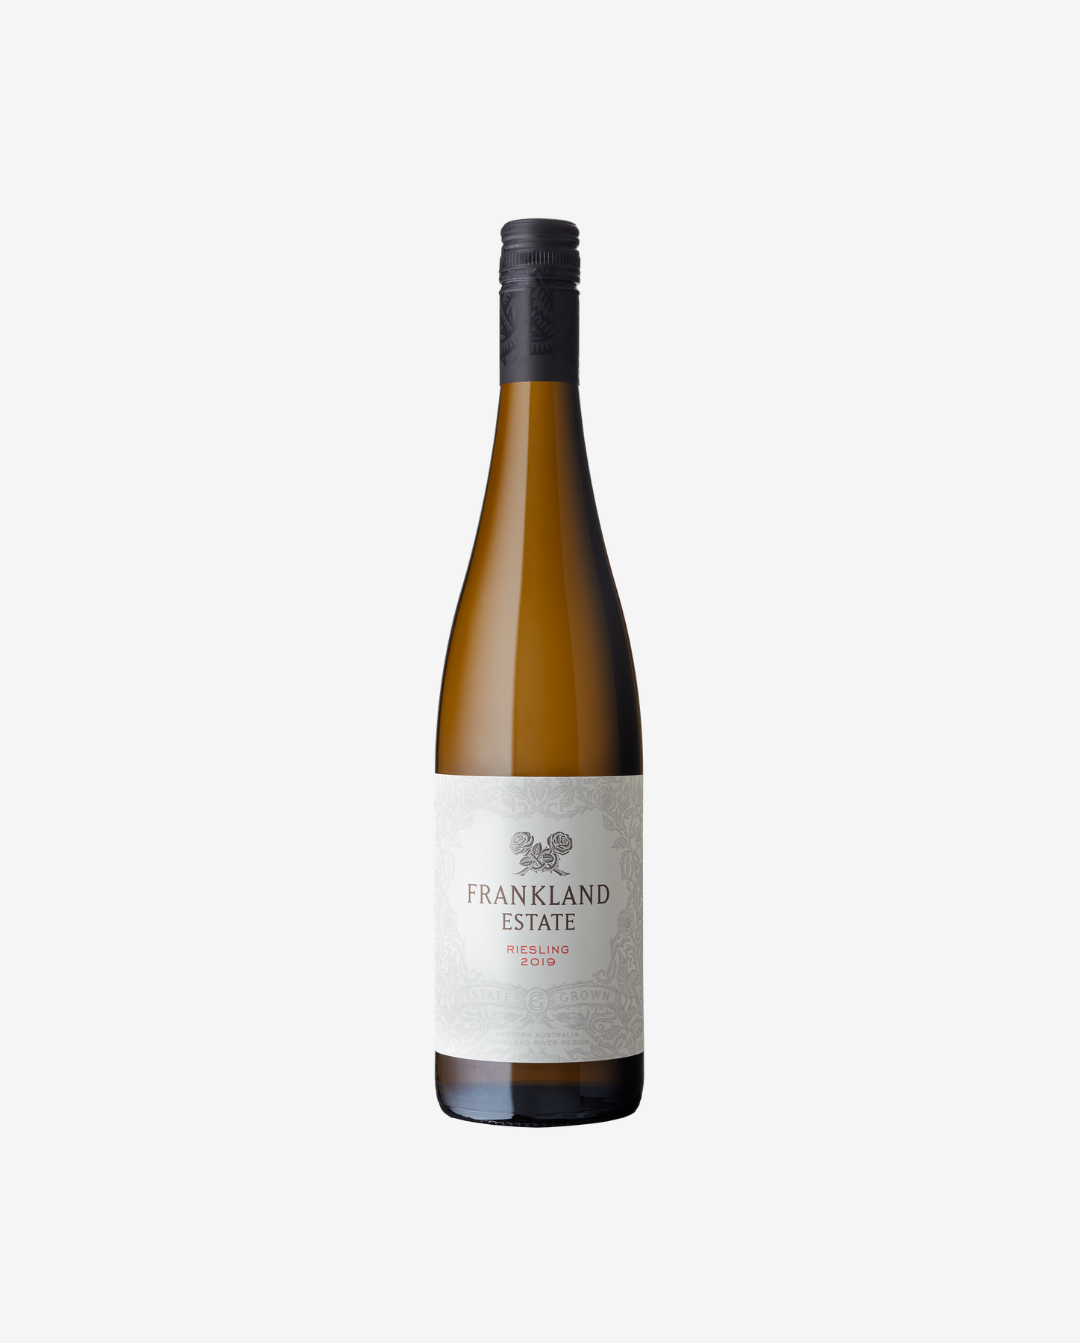 Estate Riesling, Frankland Estate 2019